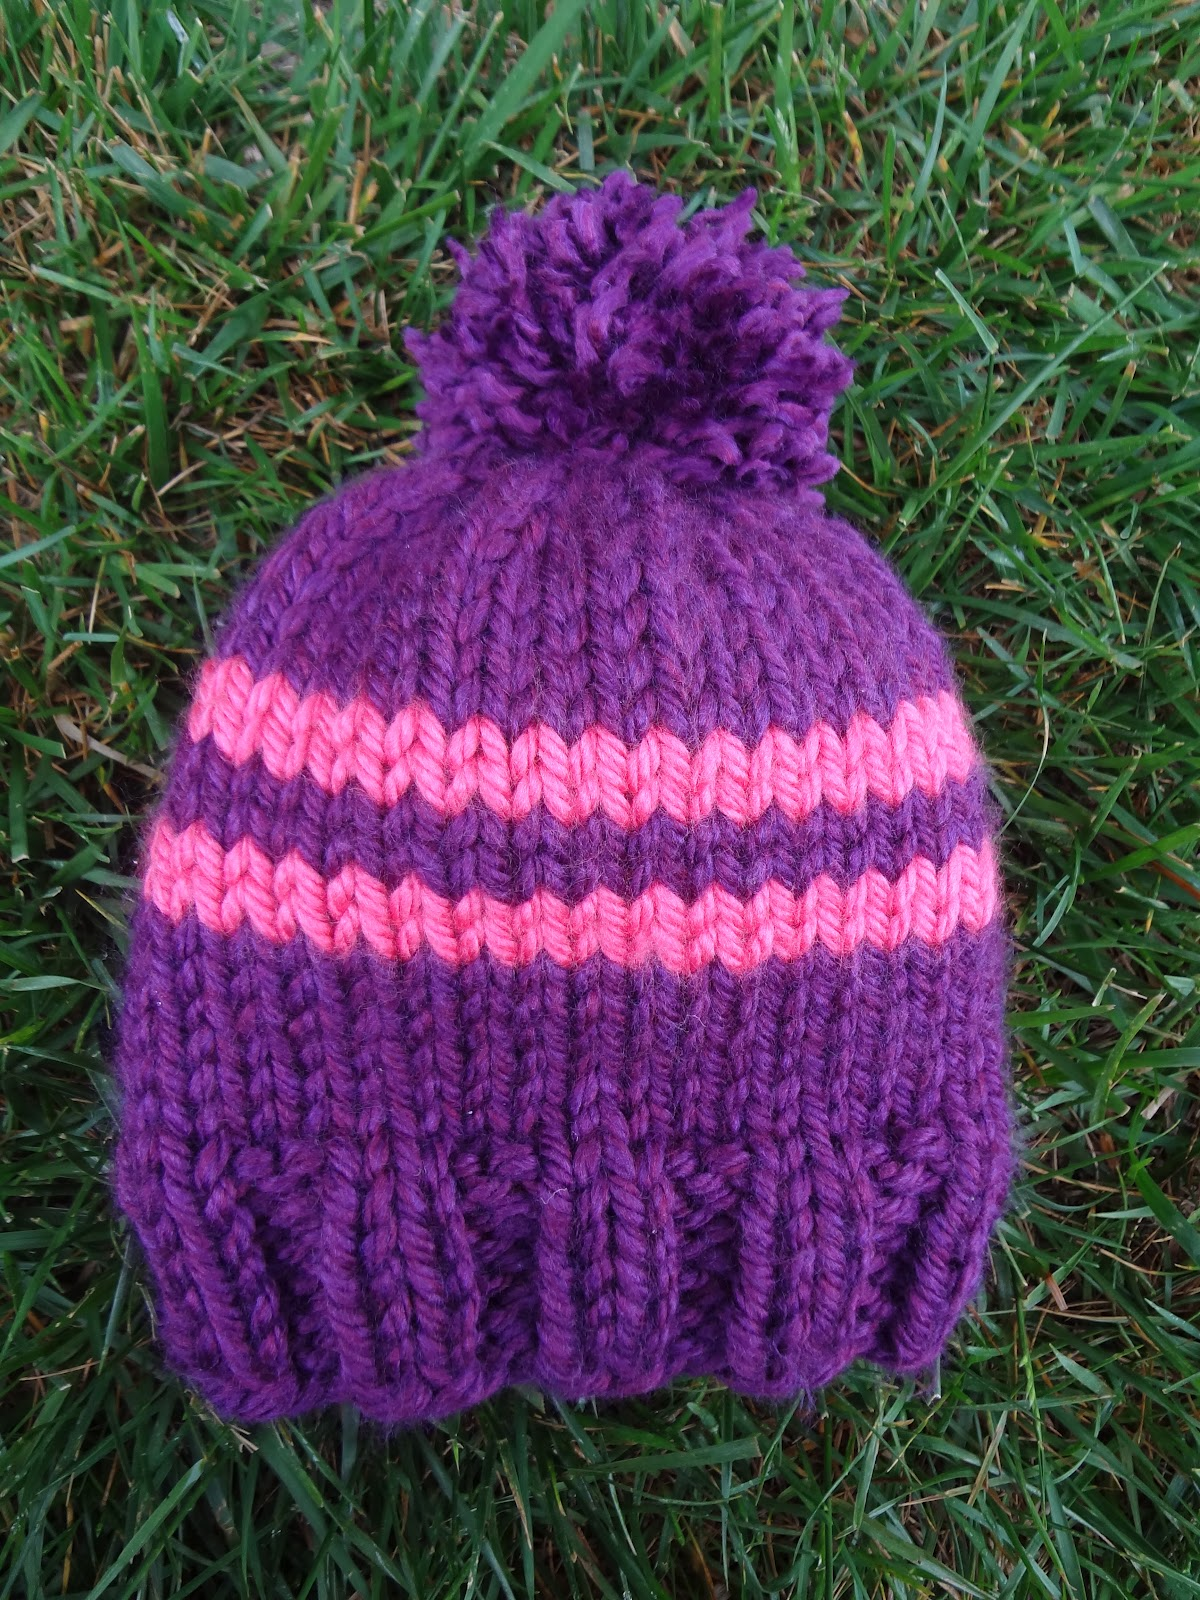 Free Hat Knitting Pattern For 2 Year Old : Fiber Flux: Free Knitting Pattern! Preschooler Rugby Hat